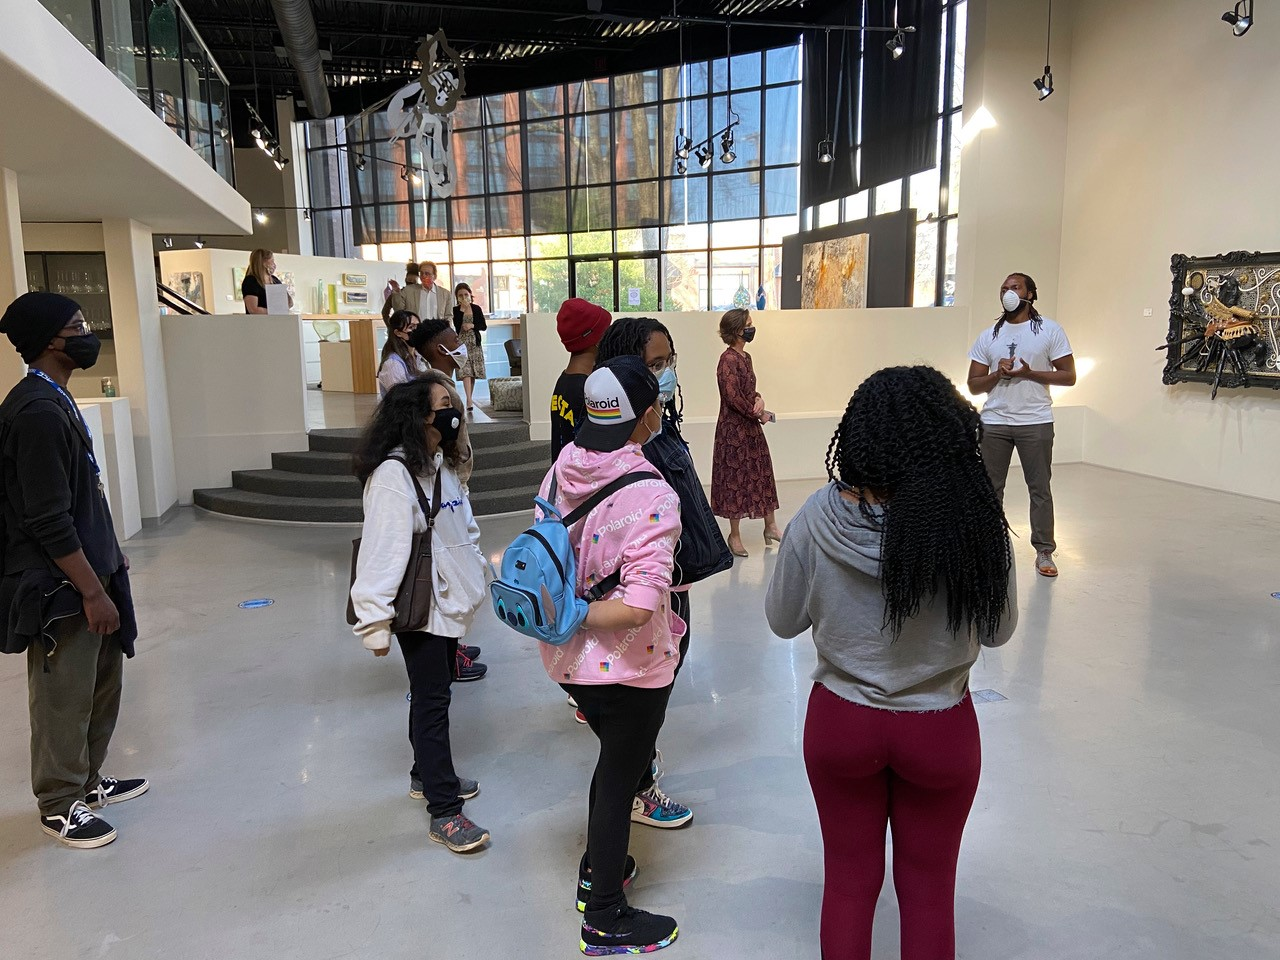 ASC – Lorien Academy is a Journey of Creative Discovery for Area Youth